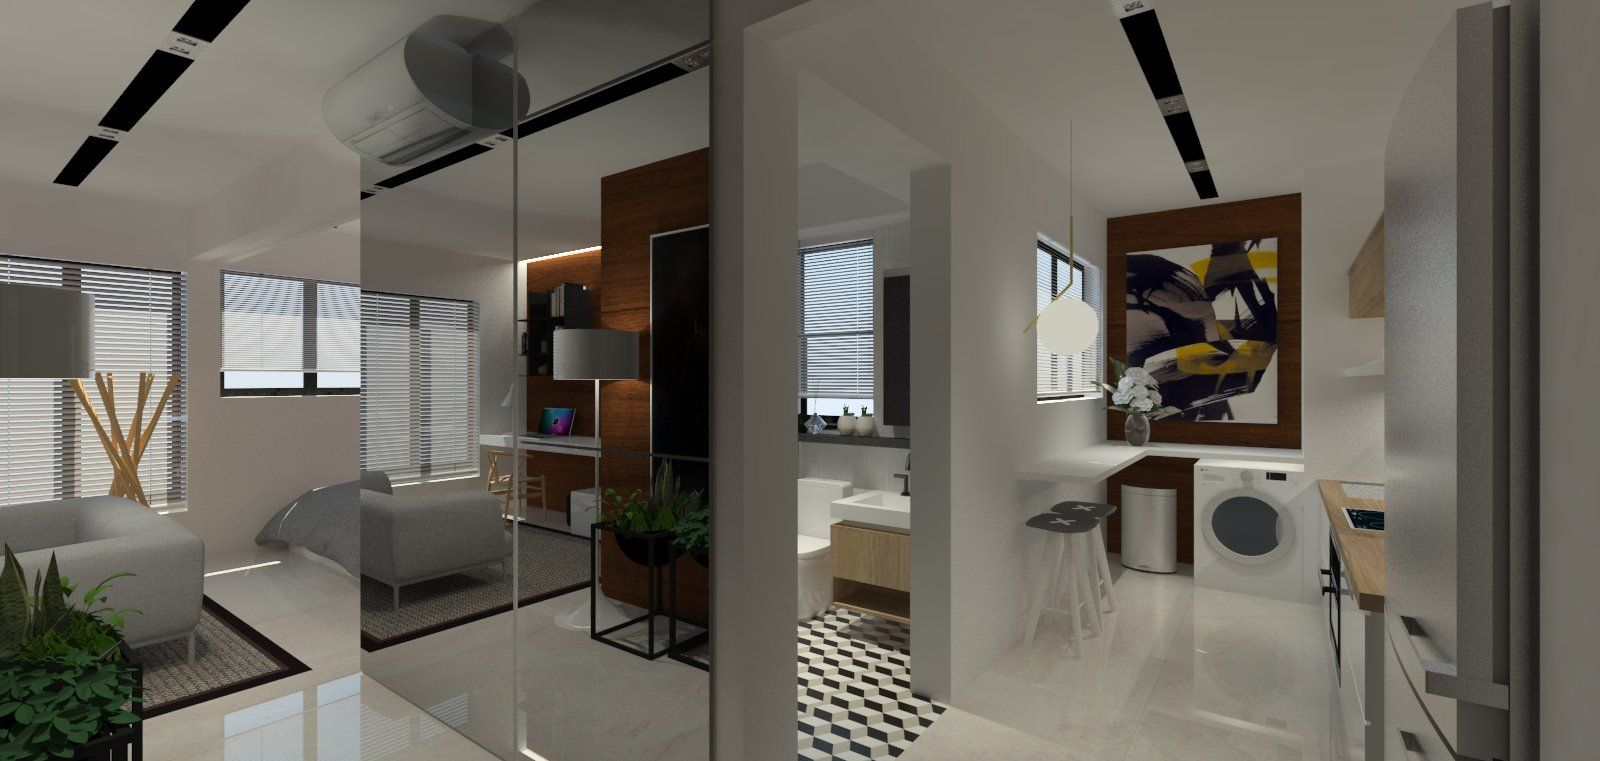 Hdb 2 Room Bto For Singles 47sqm Apartment Interior Design Conceived By The Owner Of This Pinterest Apartment Interior Small Apartment Design Apartment Design